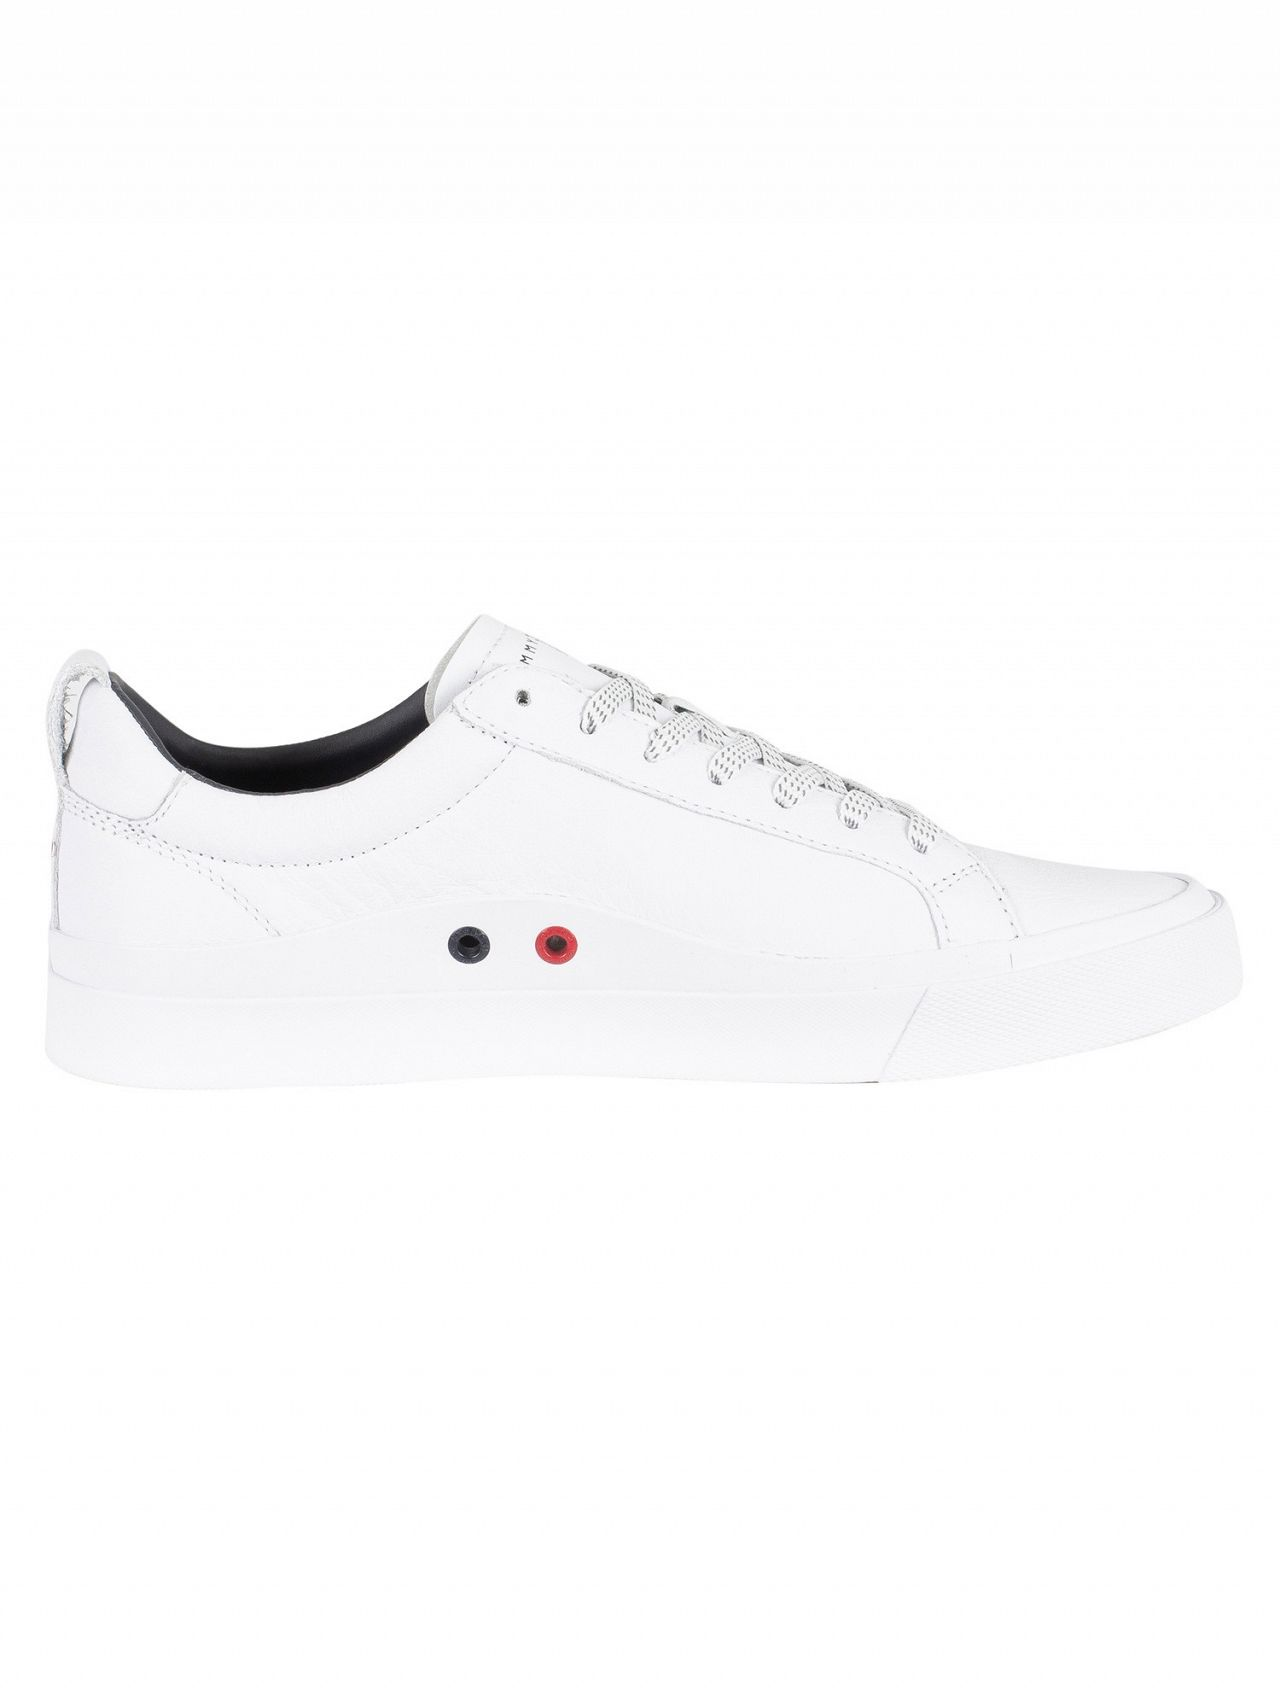 fddd7fd70490 Tommy Hilfiger White Flag Detail Leather Trainers